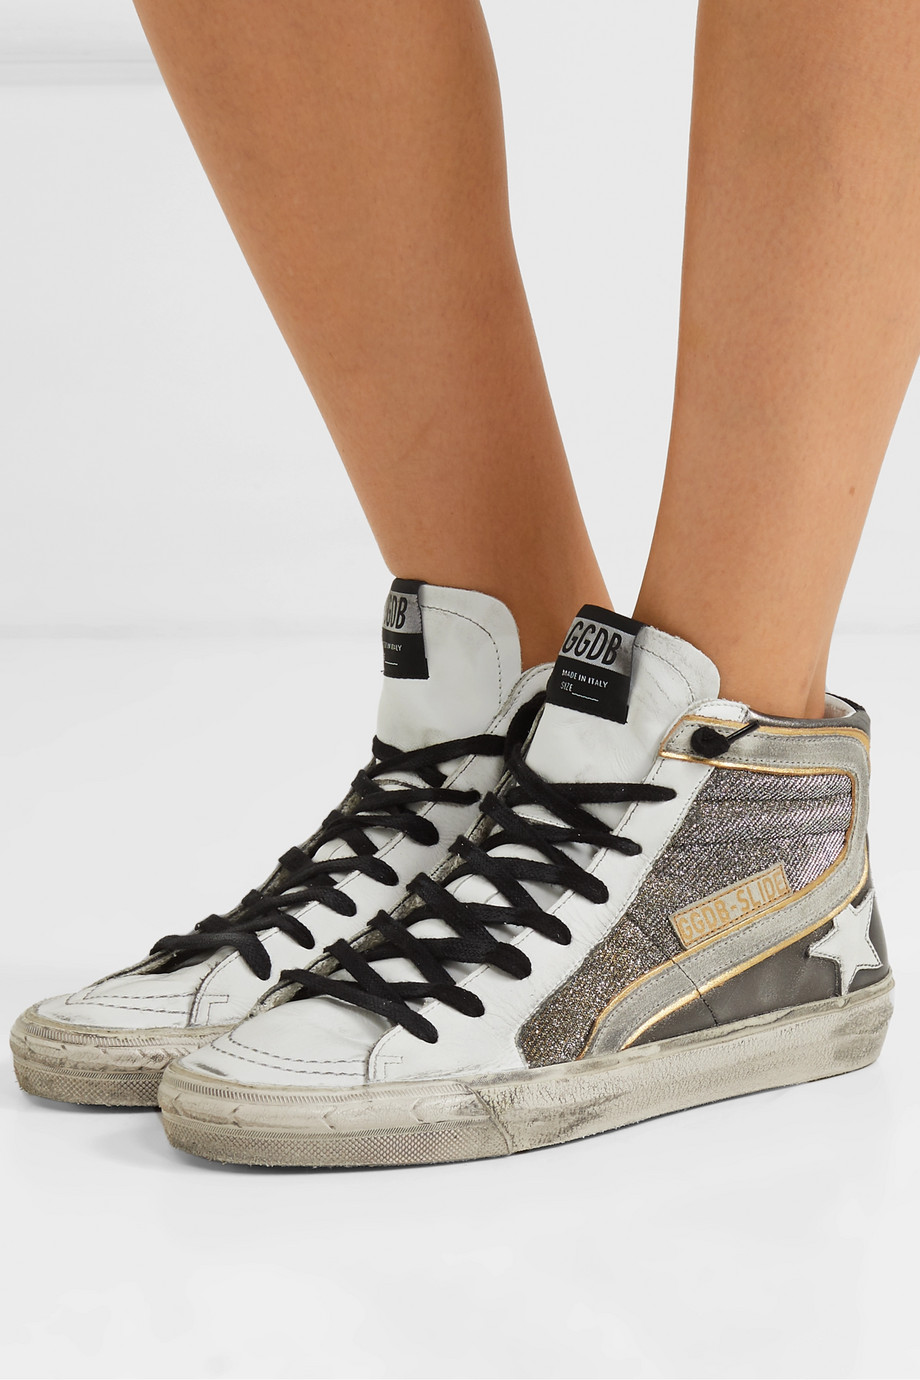 GOLDEN GOOSE Slide distressed suede-trimmed leather and Lurex high-top sneakers